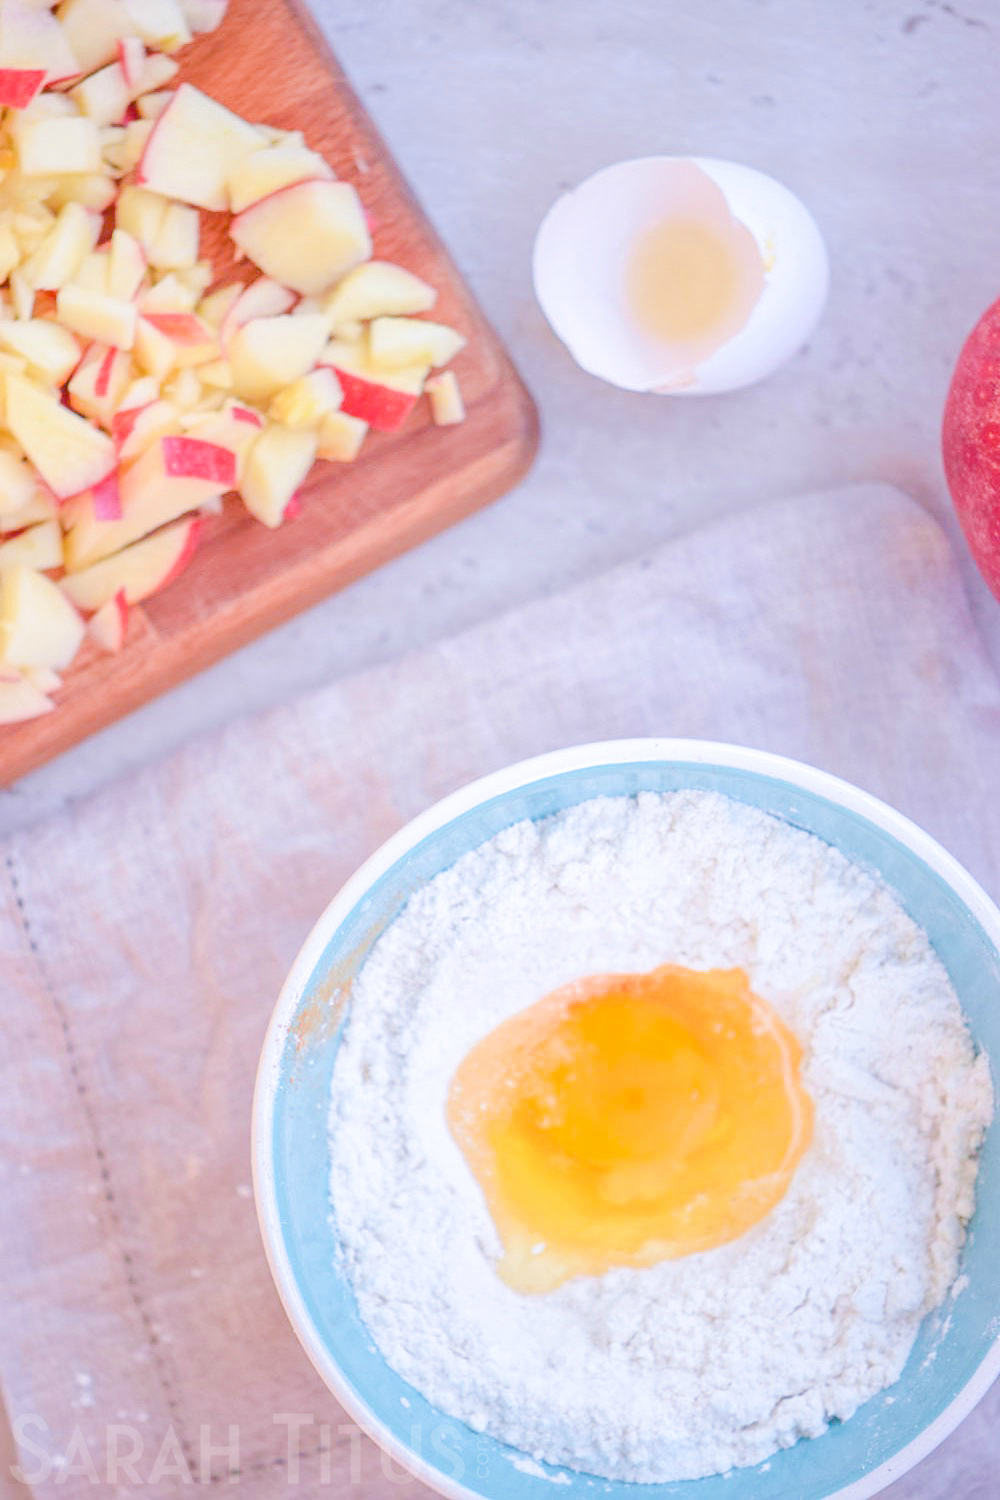 Adding an egg to the dry ingredients bowl for the baked apple doughnuts